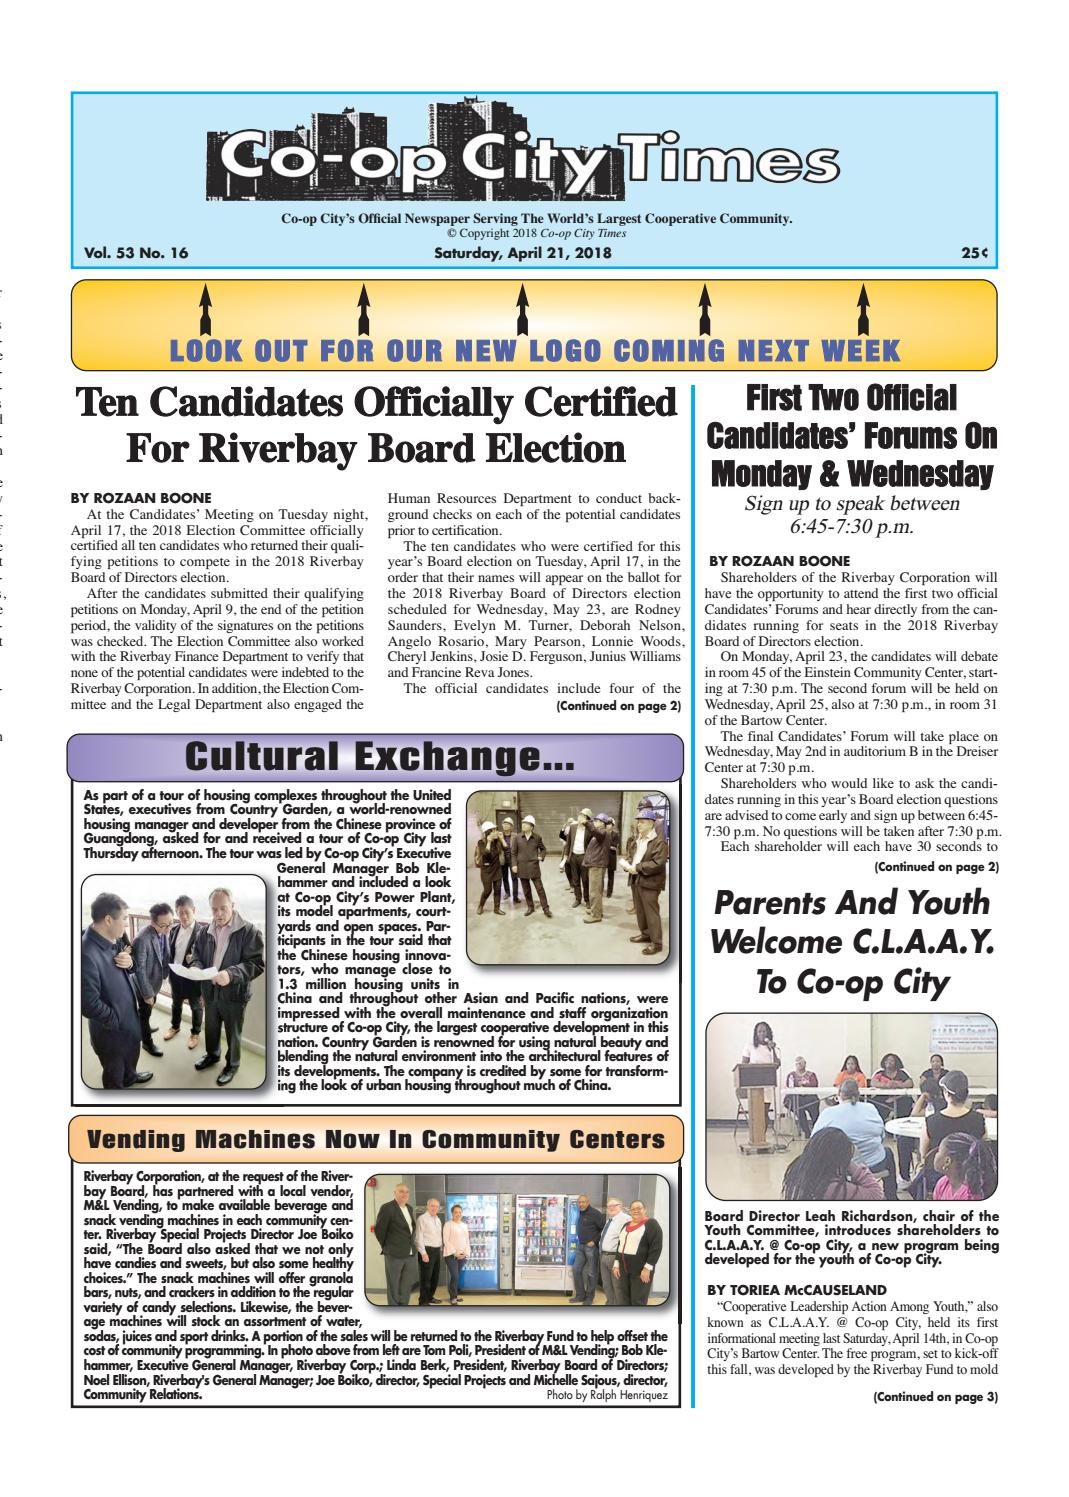 Co-op City Times 04/21/18 by Co-op City Times - issuu